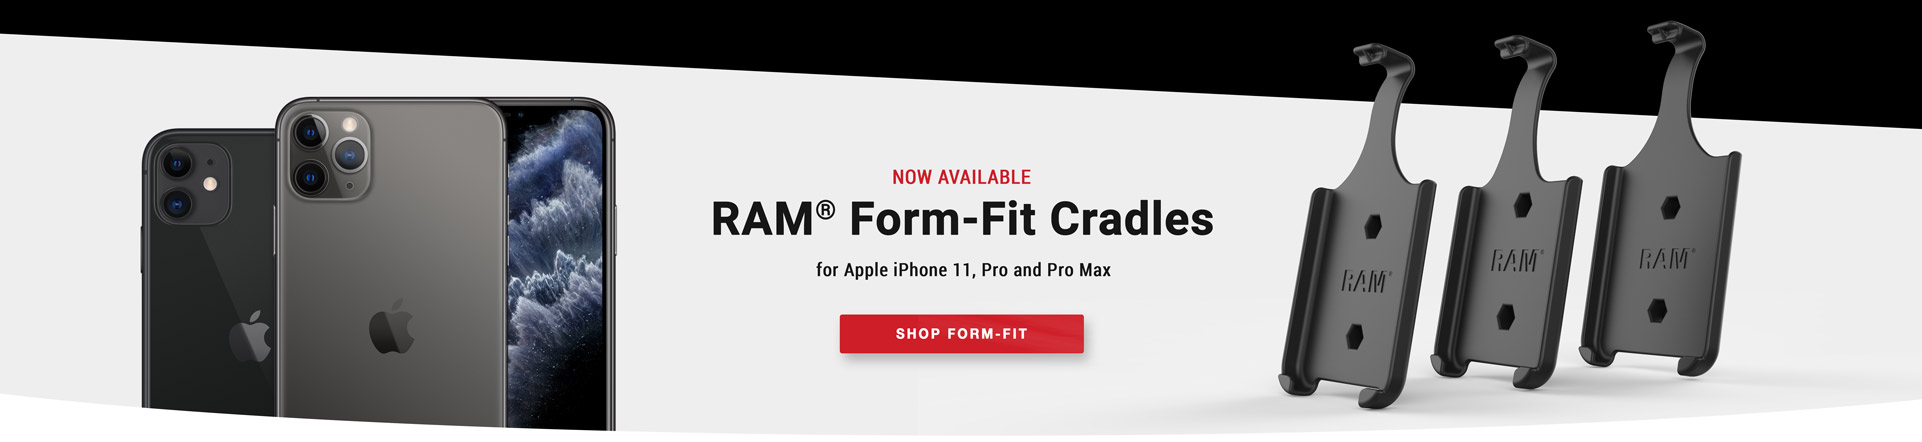 Now Available: RAM® Form-Fit Cradles